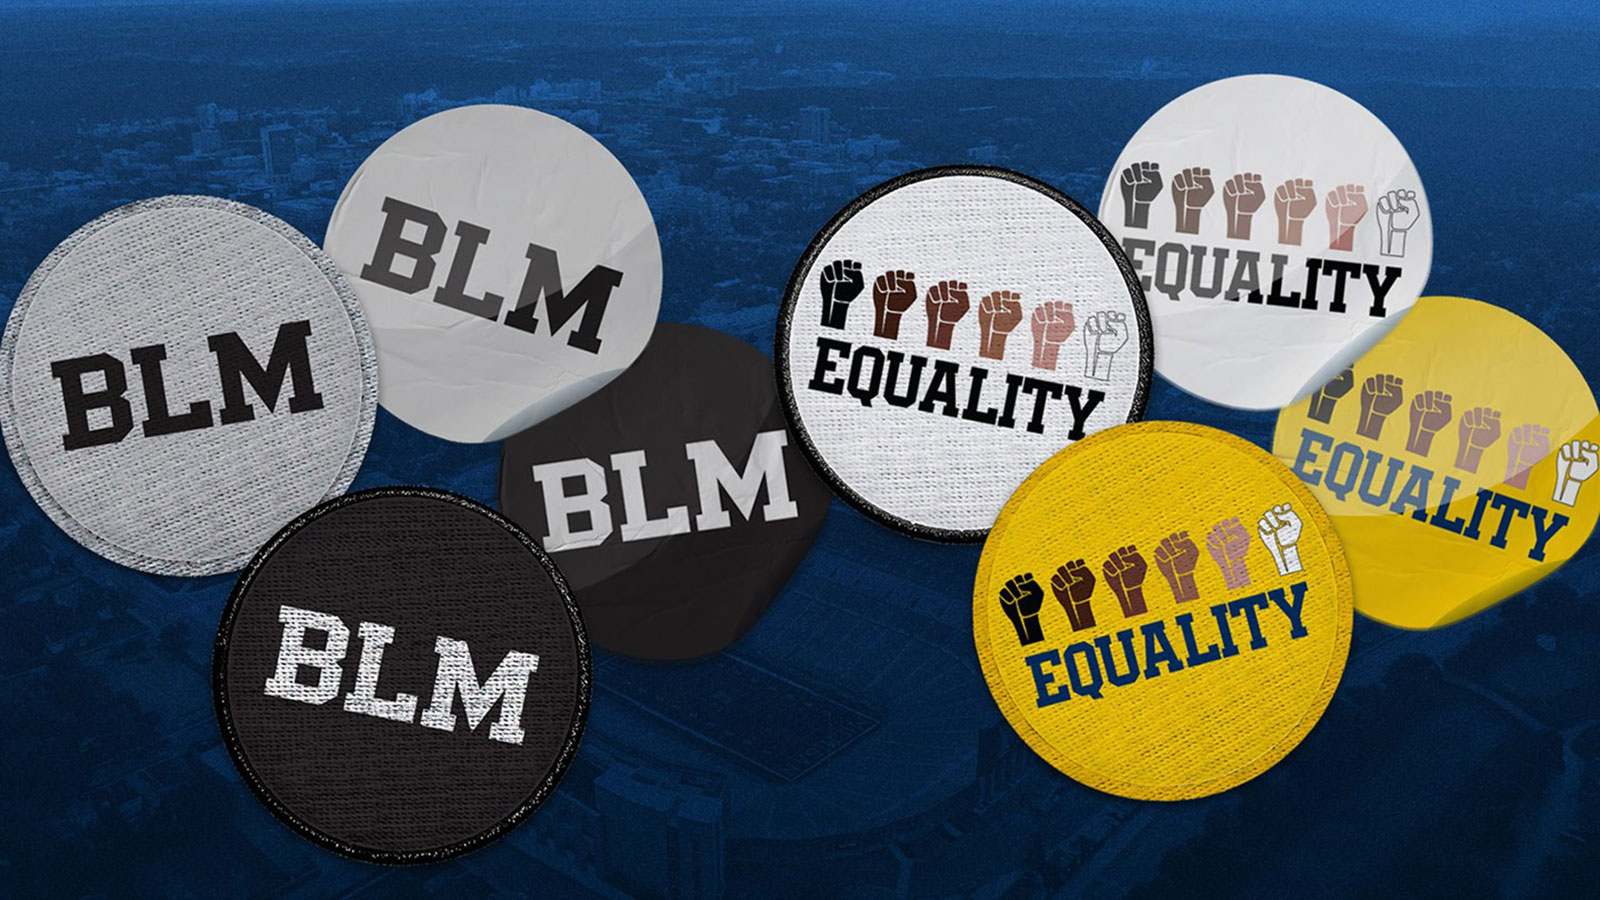 University of Michigan football team debuts an 'EQUALITY' decal on helmets